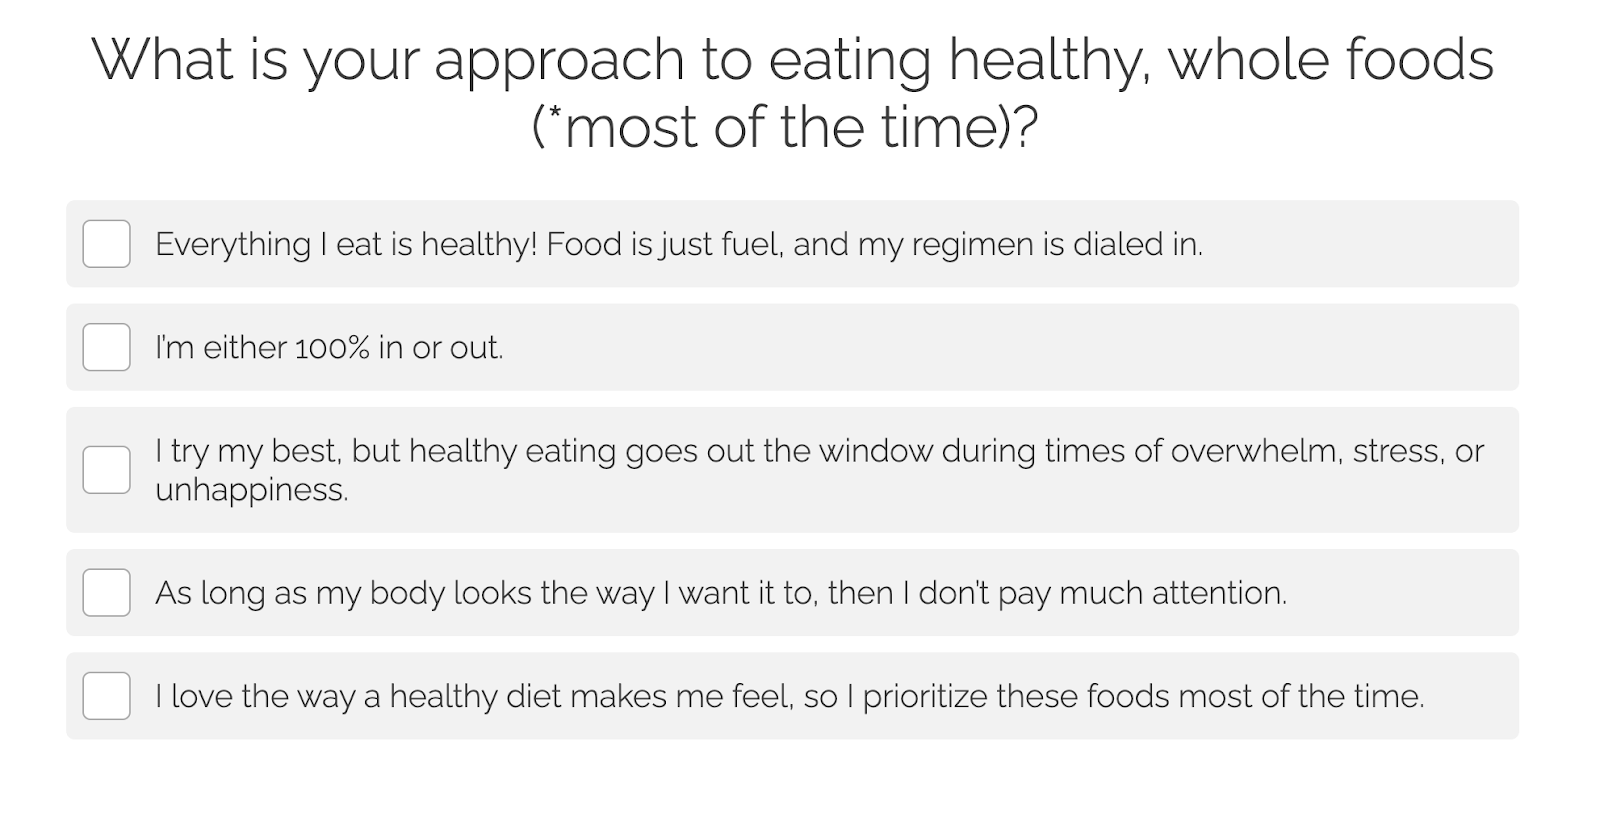 example question on what is your approach to eating healthy, whole food